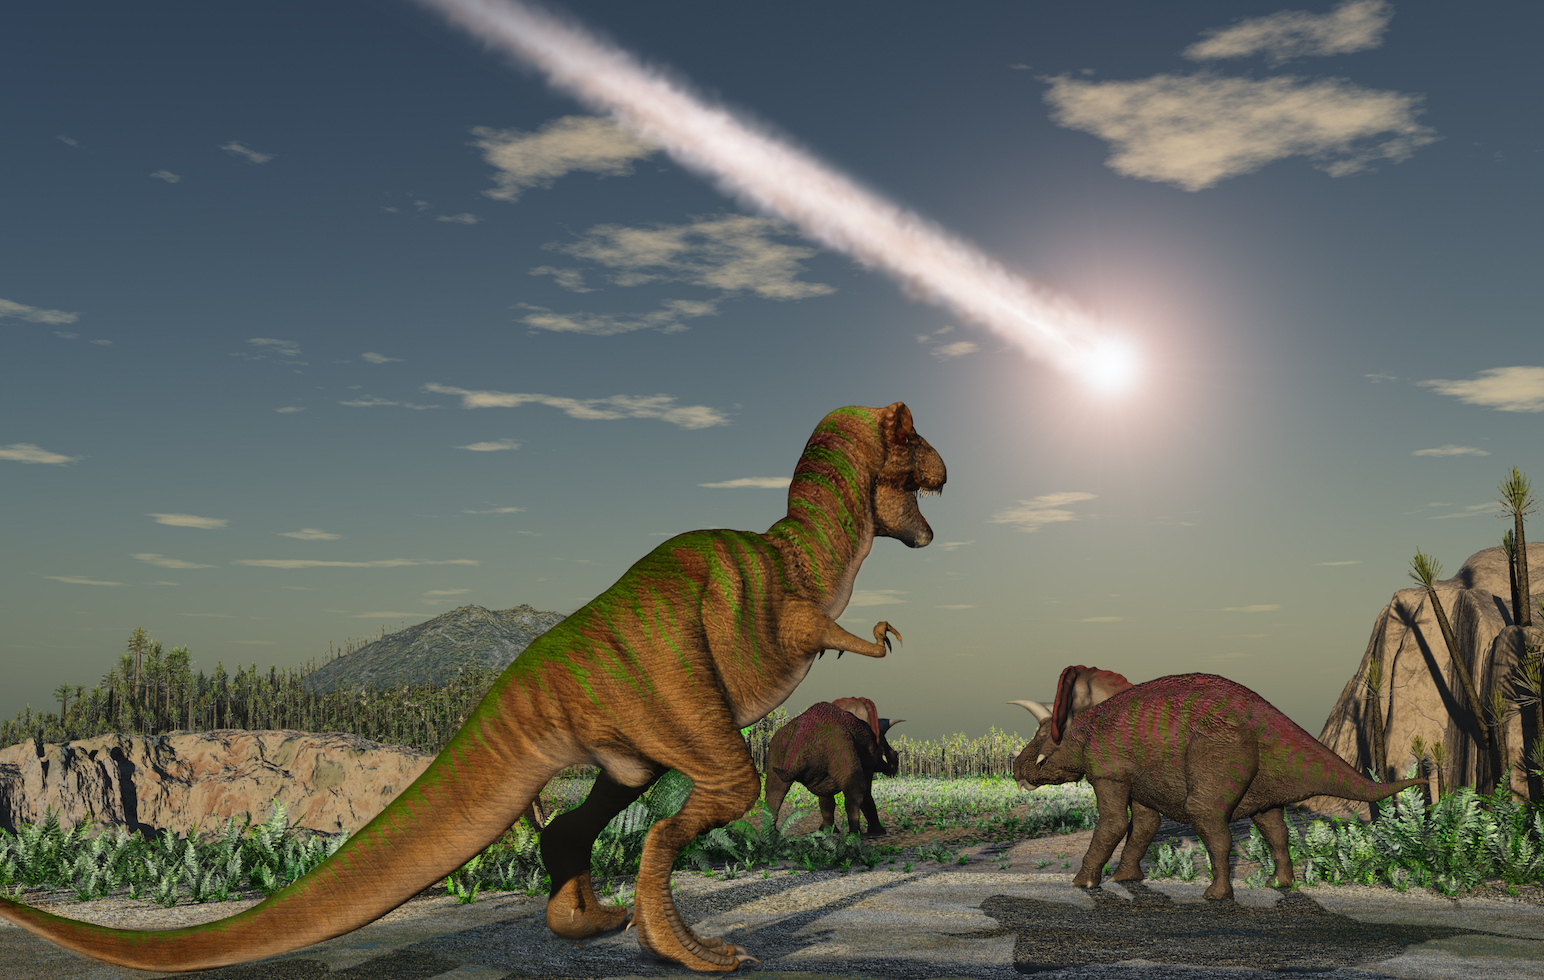 According to new research, the dinosaurs were in trouble long before the asteroid struck the Earth because they were eating toxic plants.